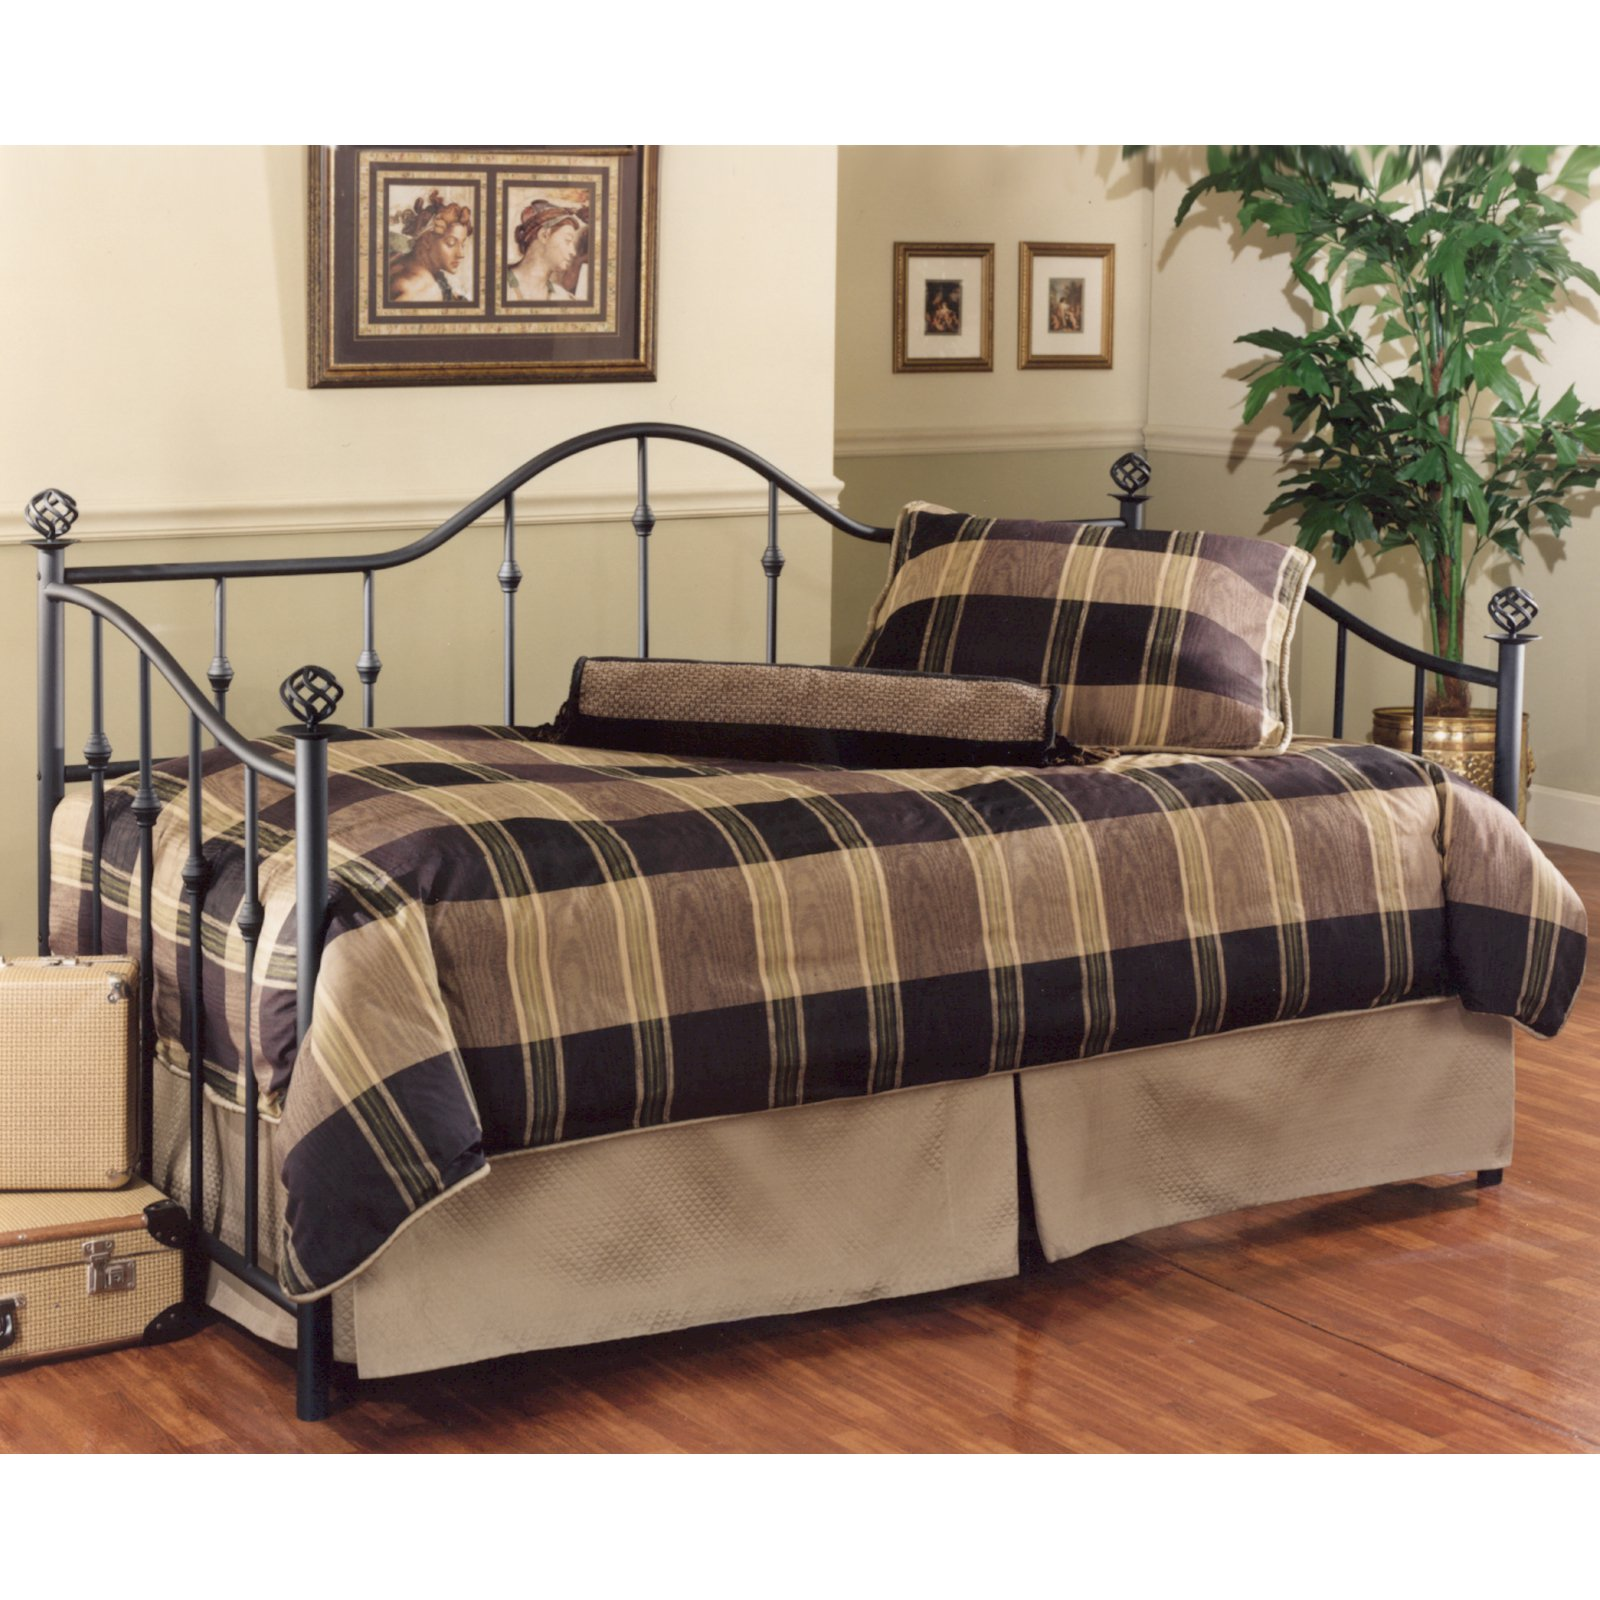 Hillsdale Chalet Daybed